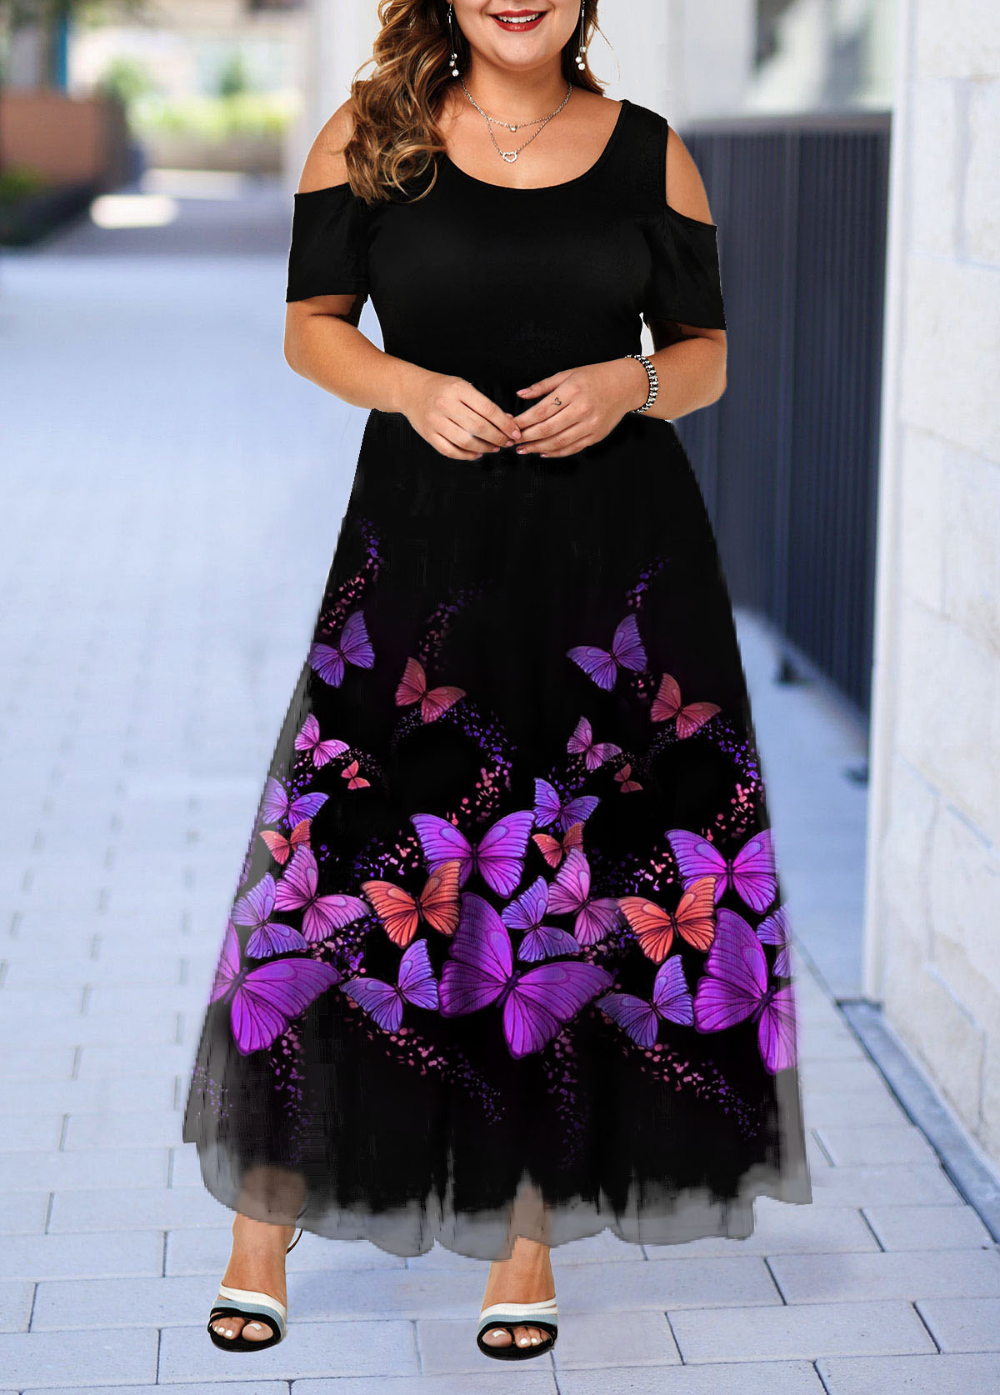 Plus Size Butterfly Print Cold Shoulder Maxi Dress Plus Size Cocktail Dresses Plus Size Fashion For Women Summer Butterfly Print Maxi Dress [ 1395 x 1000 Pixel ]